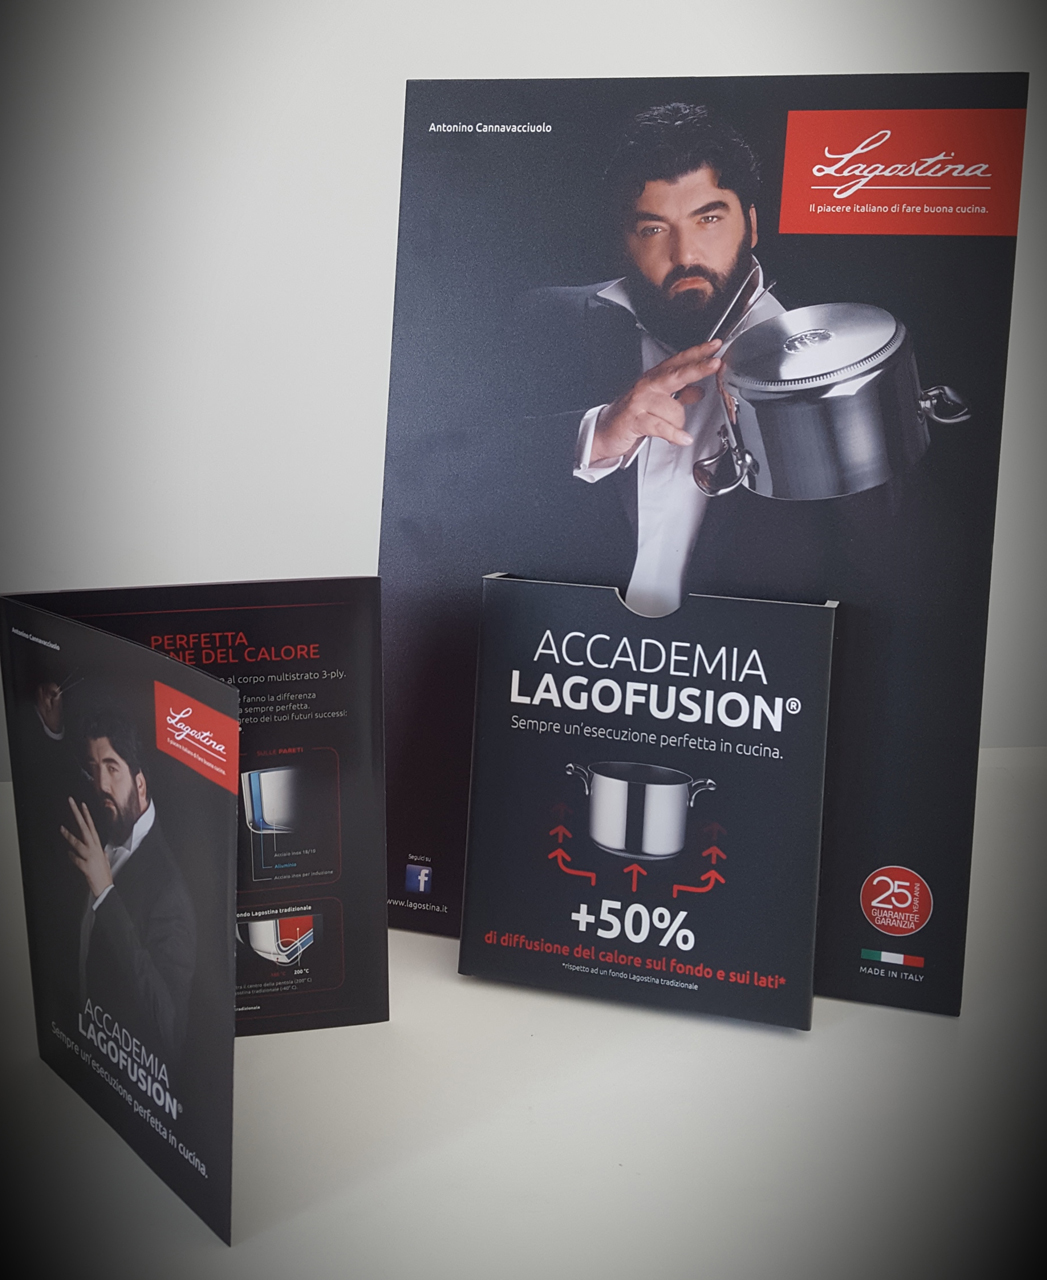 To be a line Ambassador the chef Cannavacciuolo becomes an exclusive Orchestra director